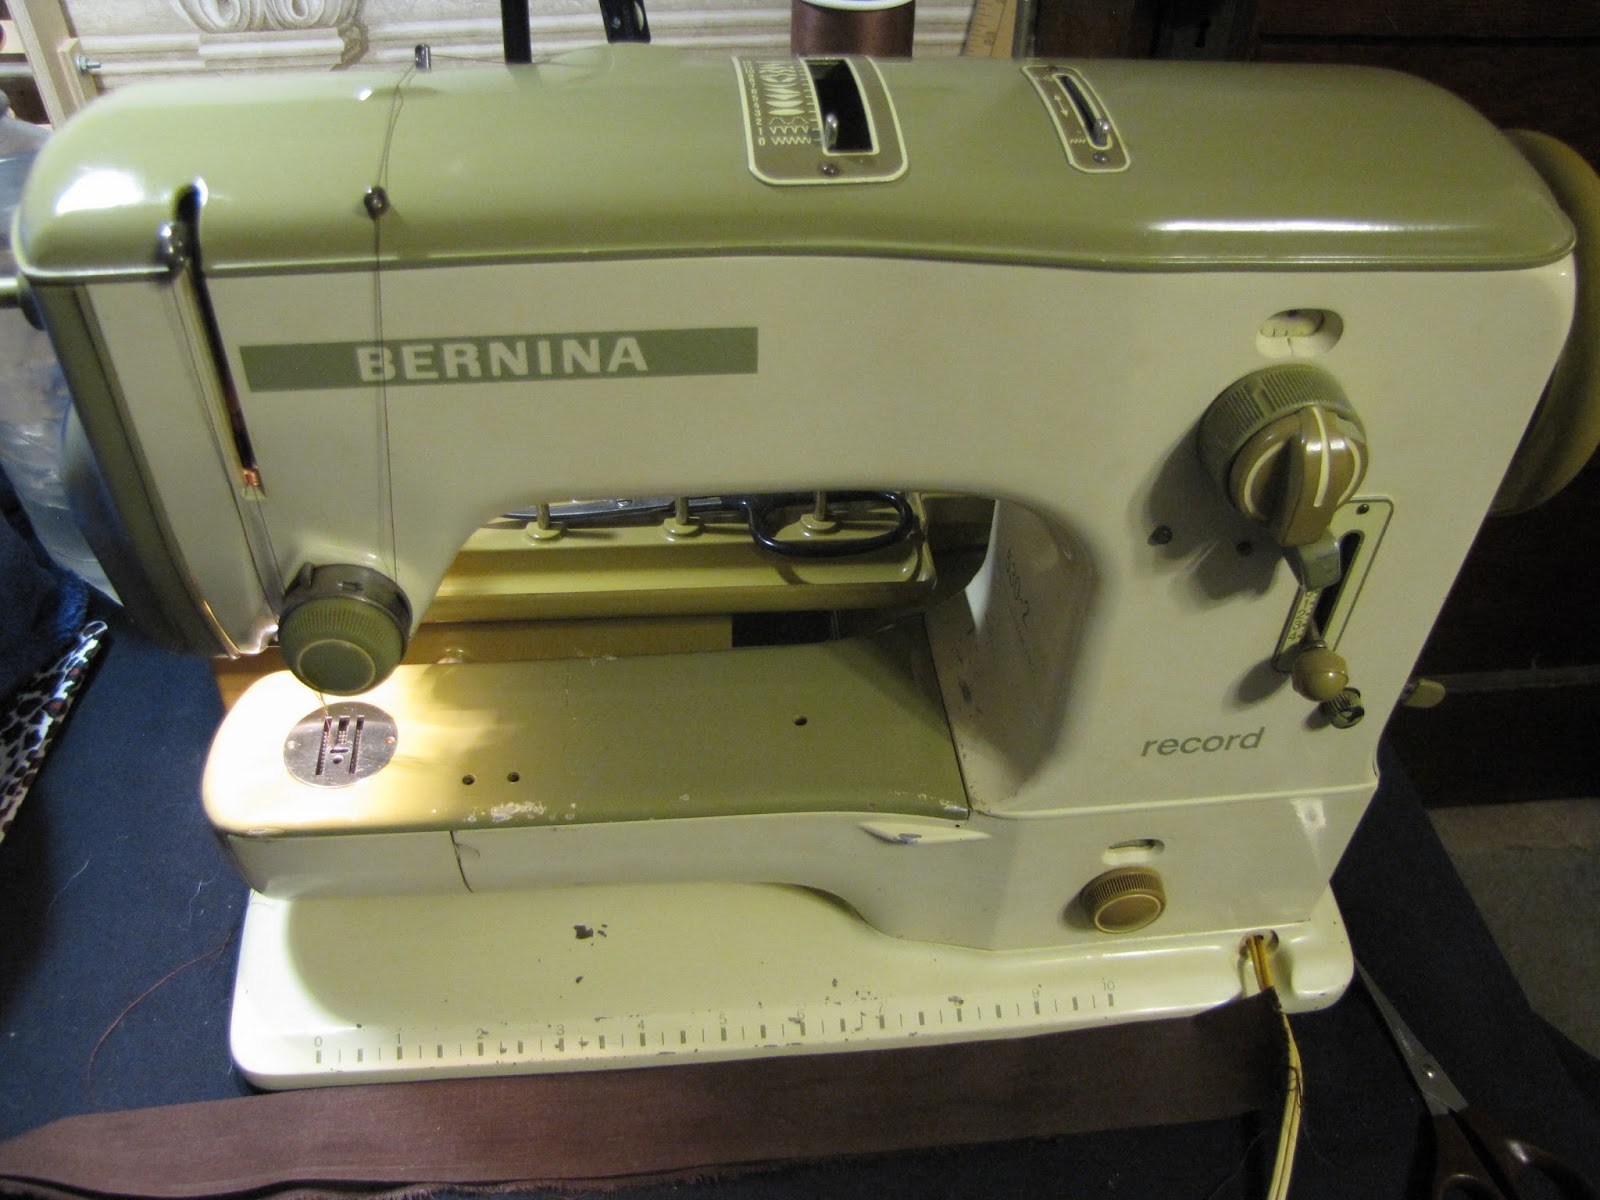 small resolution of vintage sewing machines bernina sewing machine jpg 1600x1200 used bernina sewing machines sale